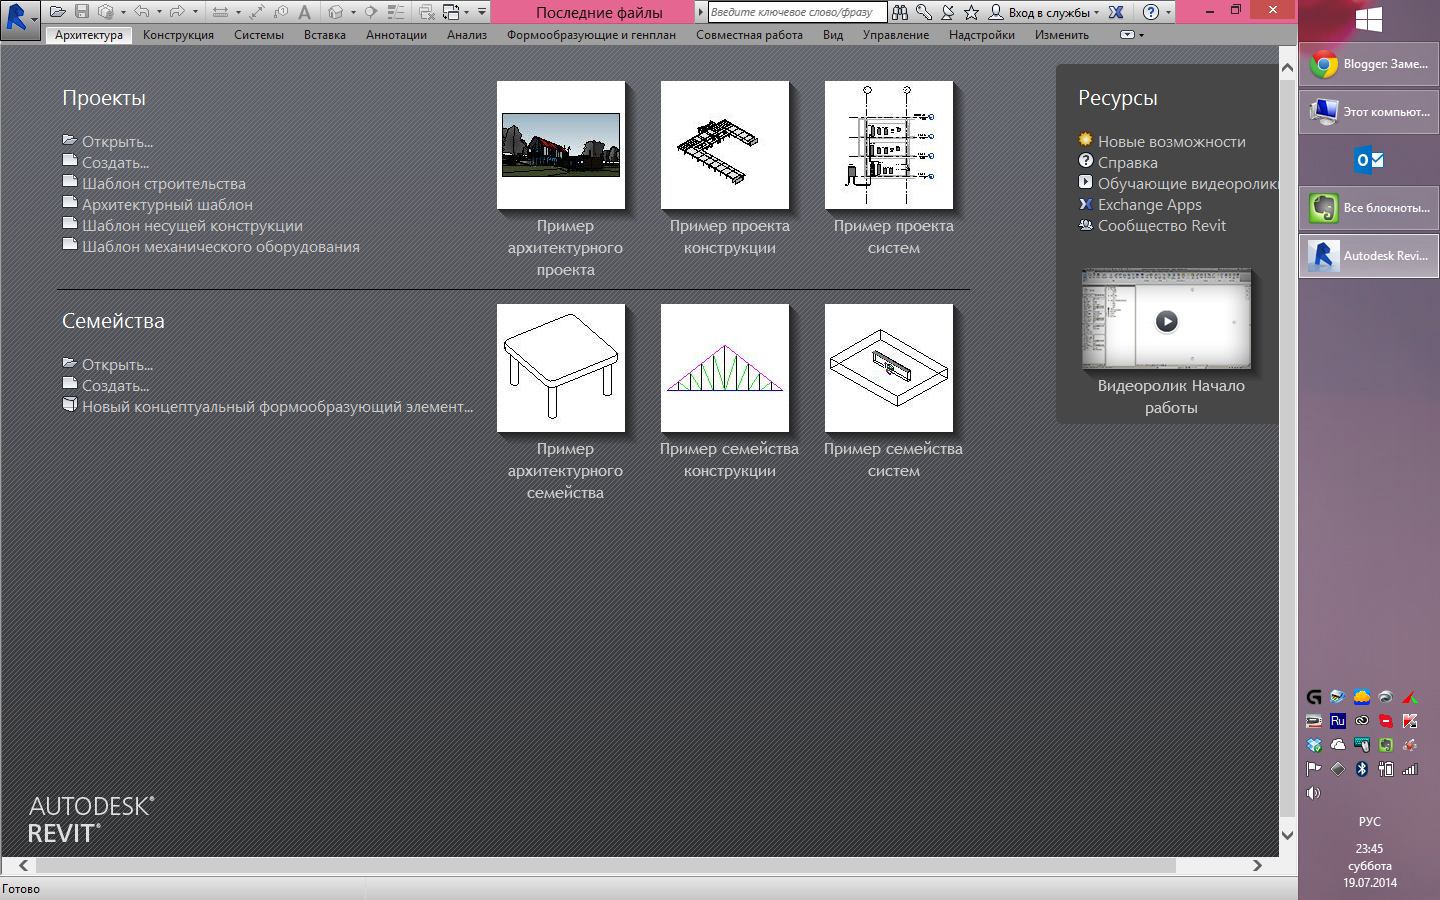 how much is Revit Architecture 2011 for macbook pro?